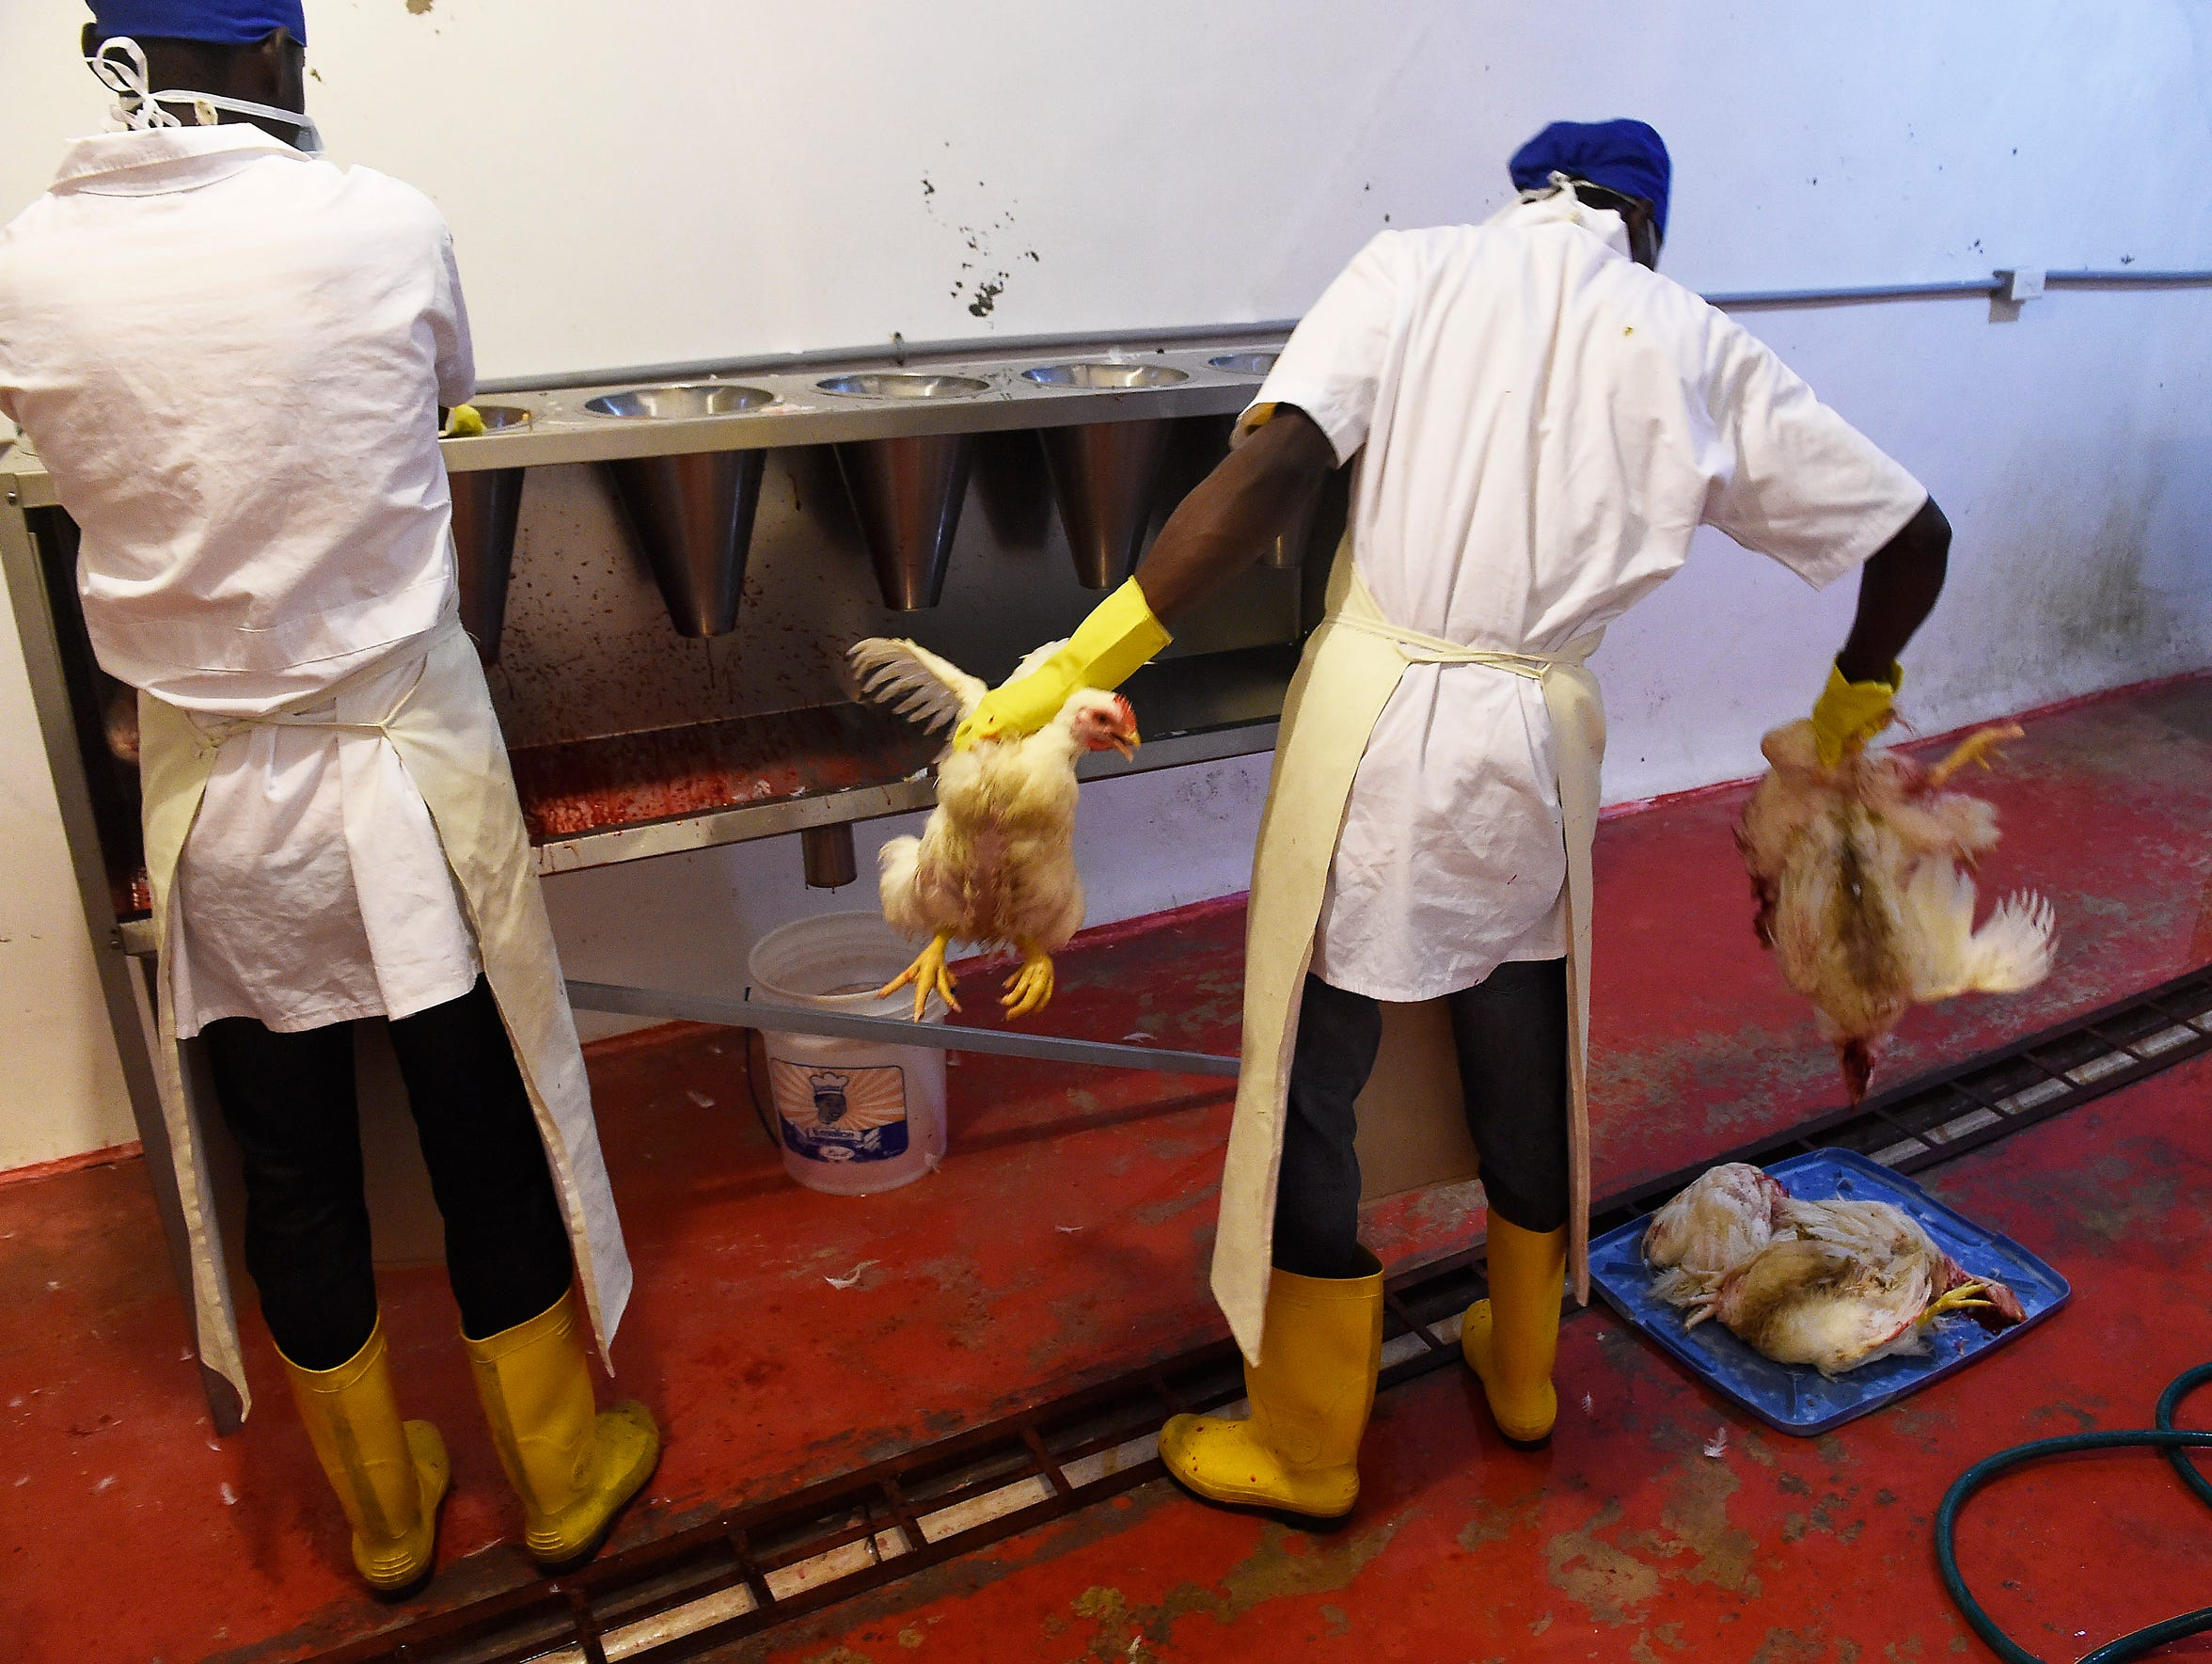 KORE operators process locally raised chickens at KORE's